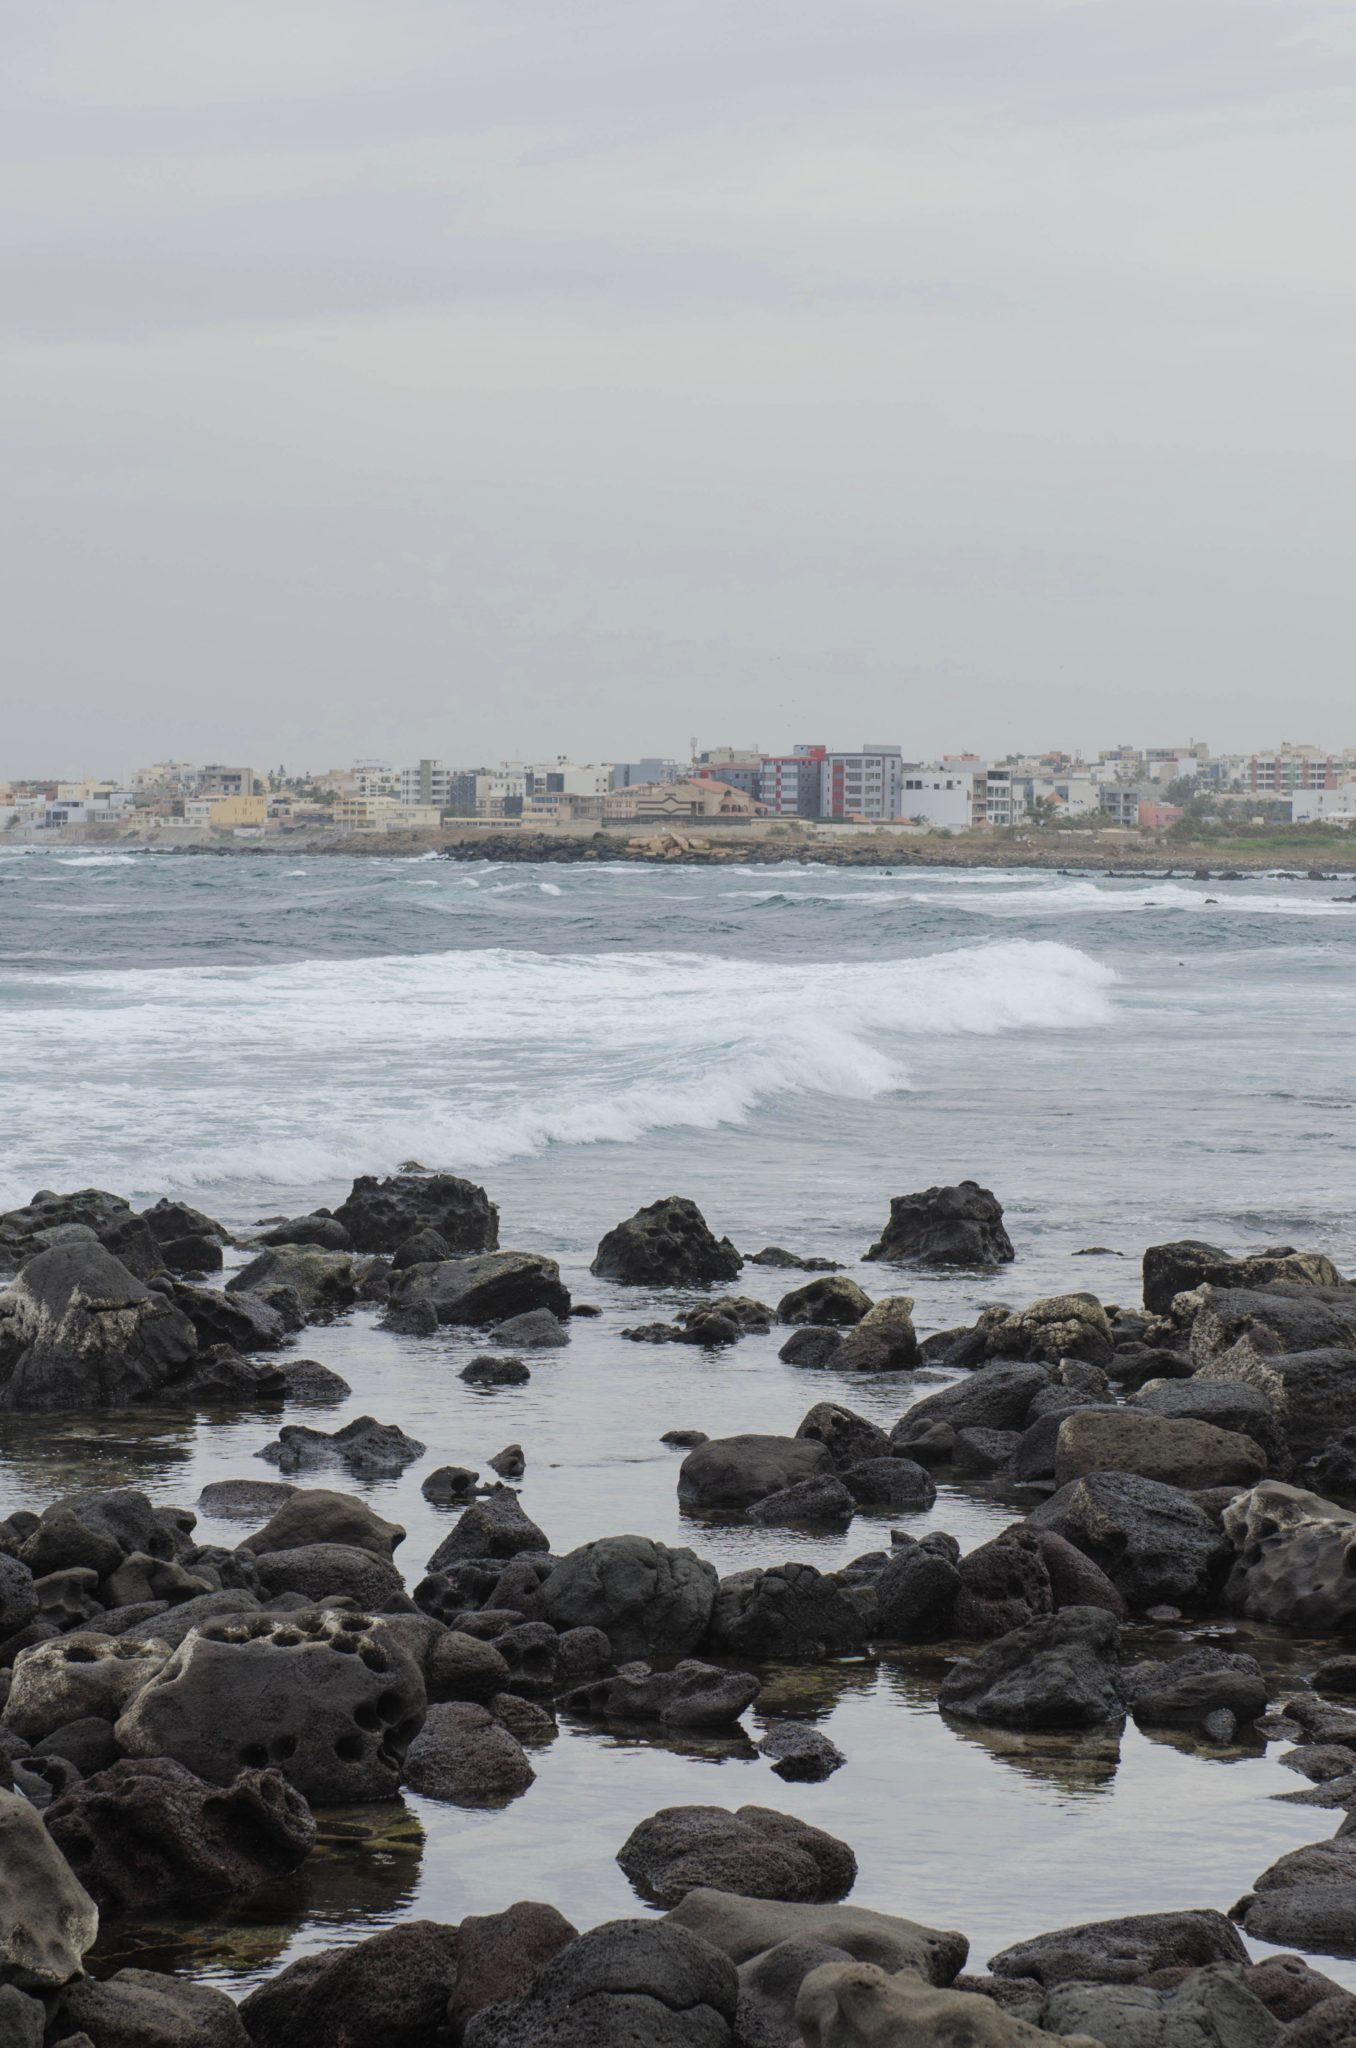 Day trips from Dakar: Watch the shore from Ile Ngor